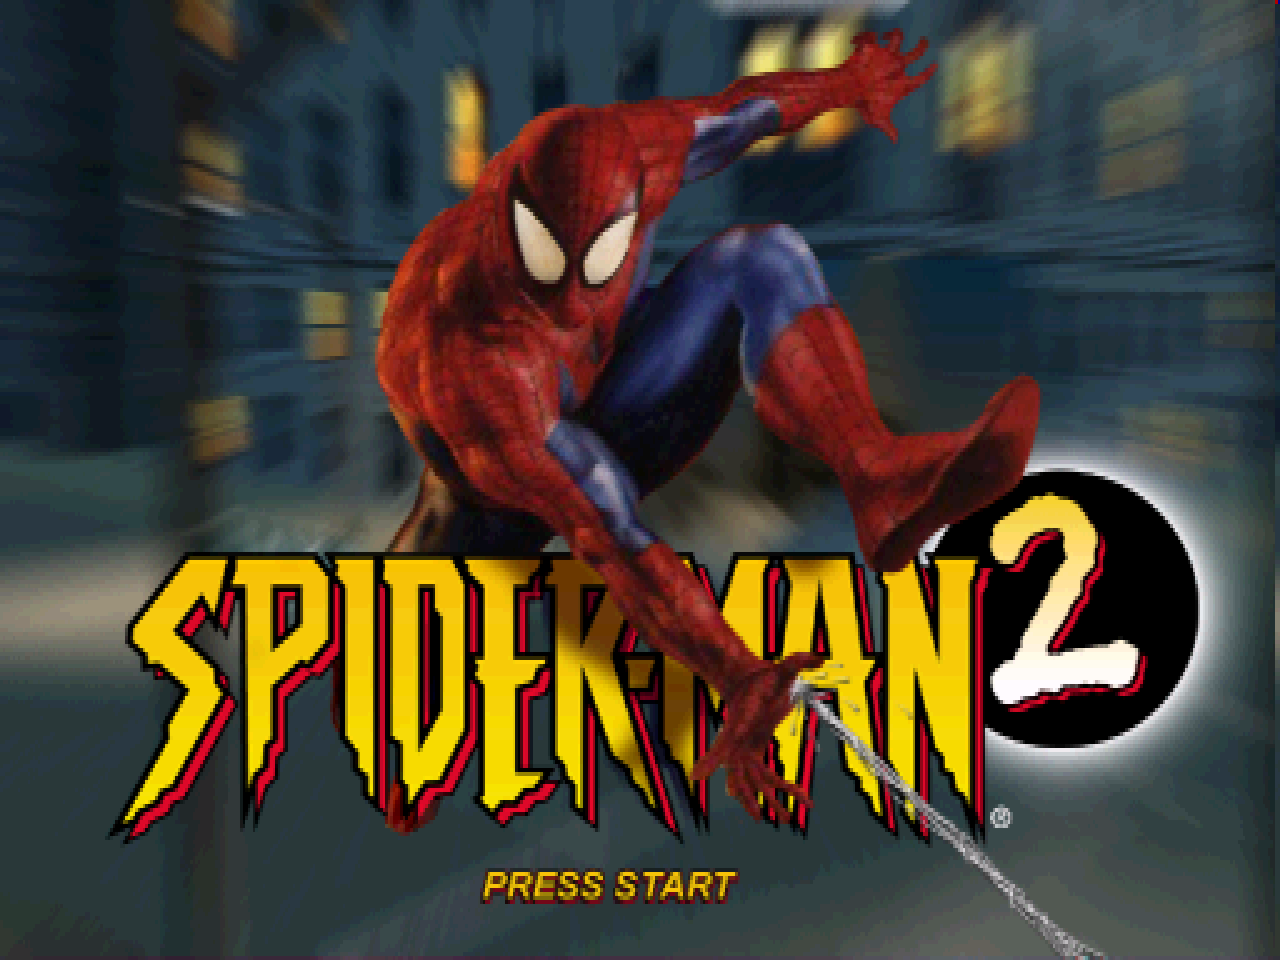 https://s3.eu-west-3.amazonaws.com/games.anthony-dessalles.com/Spider-Man 2 Enter Electro PS1 2020 - Screenshots/Spider-Man 2 Enter Electro-201125-184914.png